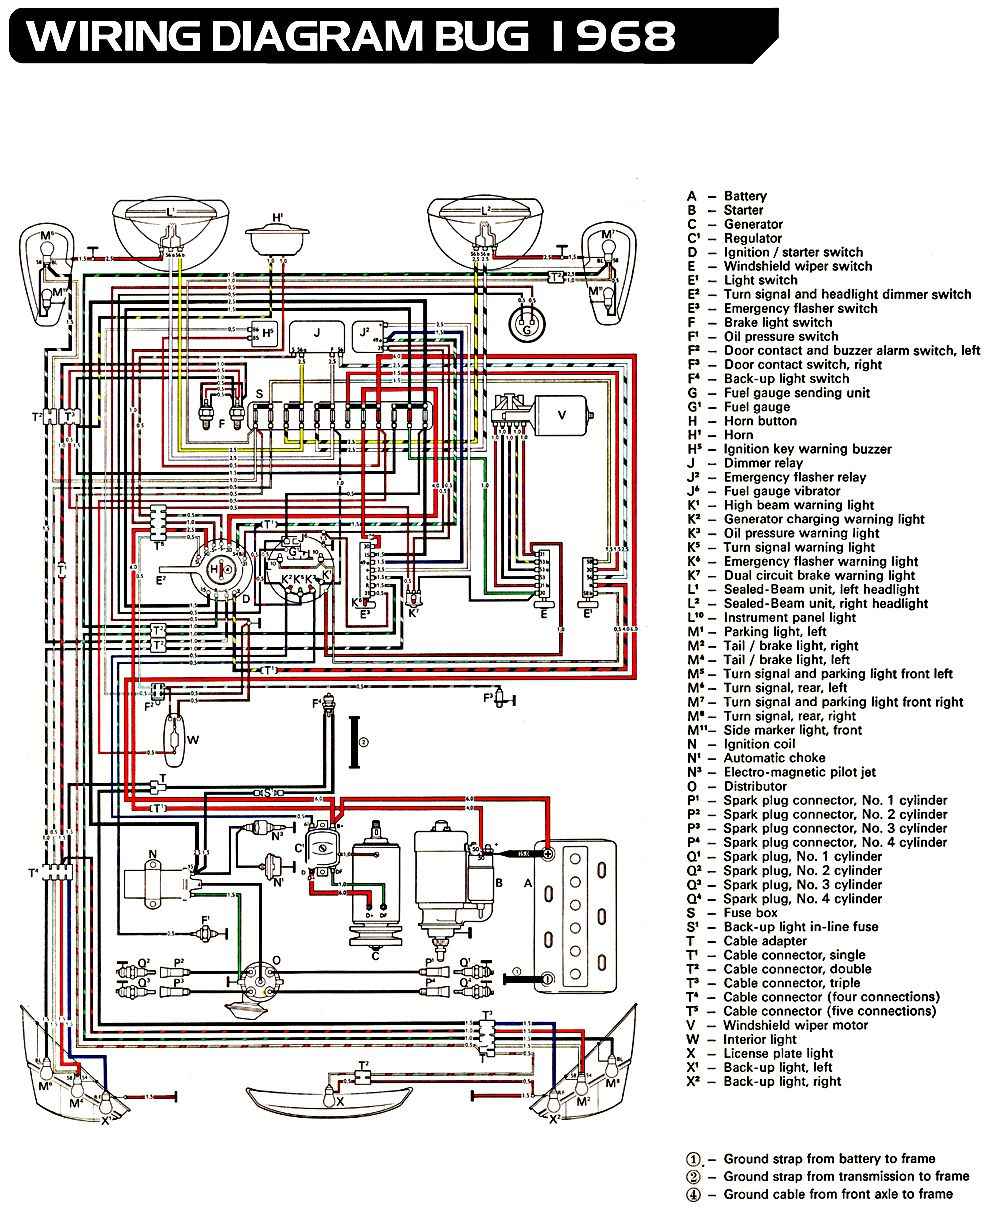 vw beetle plug wire diagram wiring diagram rows 1600 vw beetle wiring diagram [ 996 x 1211 Pixel ]